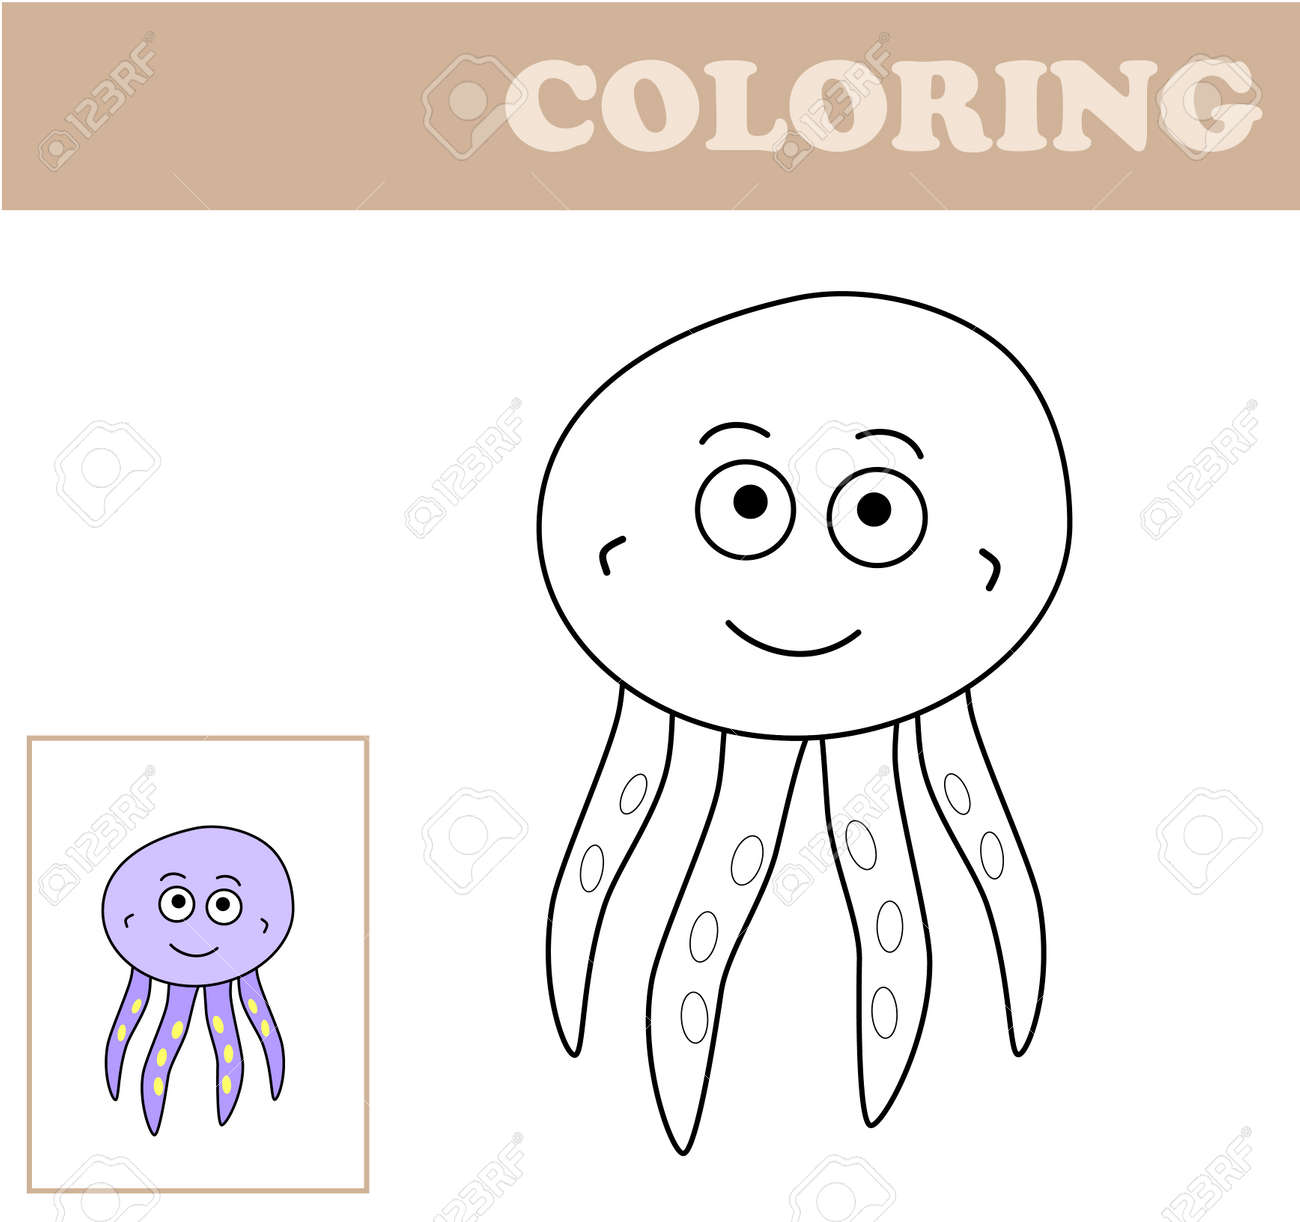 image about Printable Octopus titled Coloring webpage with octopus. Coloring guide for youngsters. Informative..